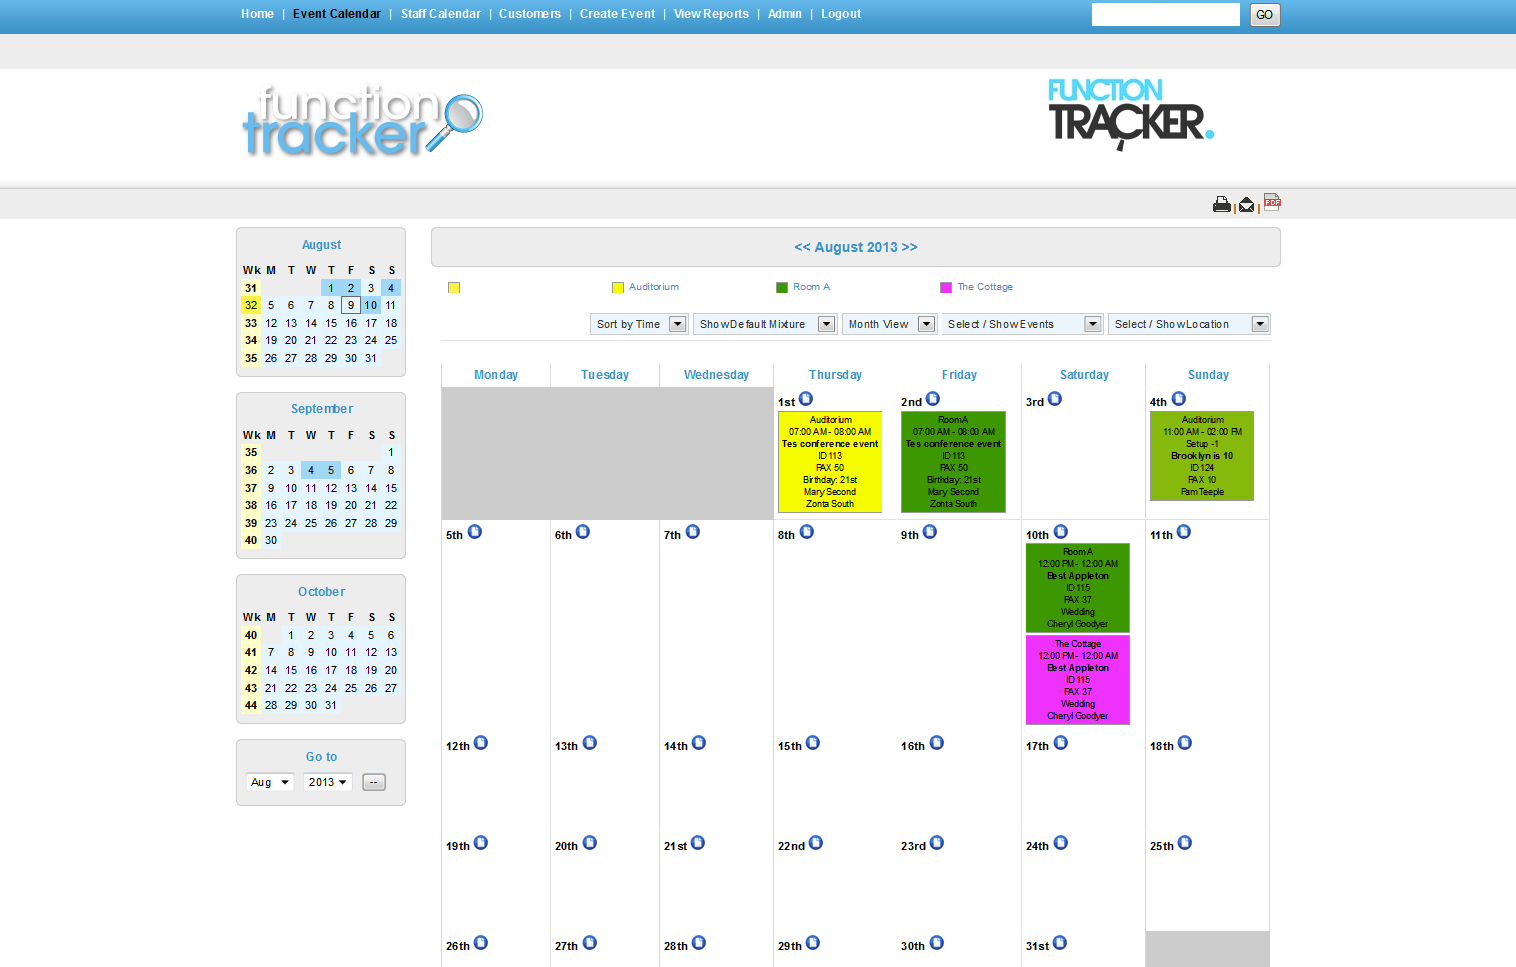 Click and drag events to different days on the calendar